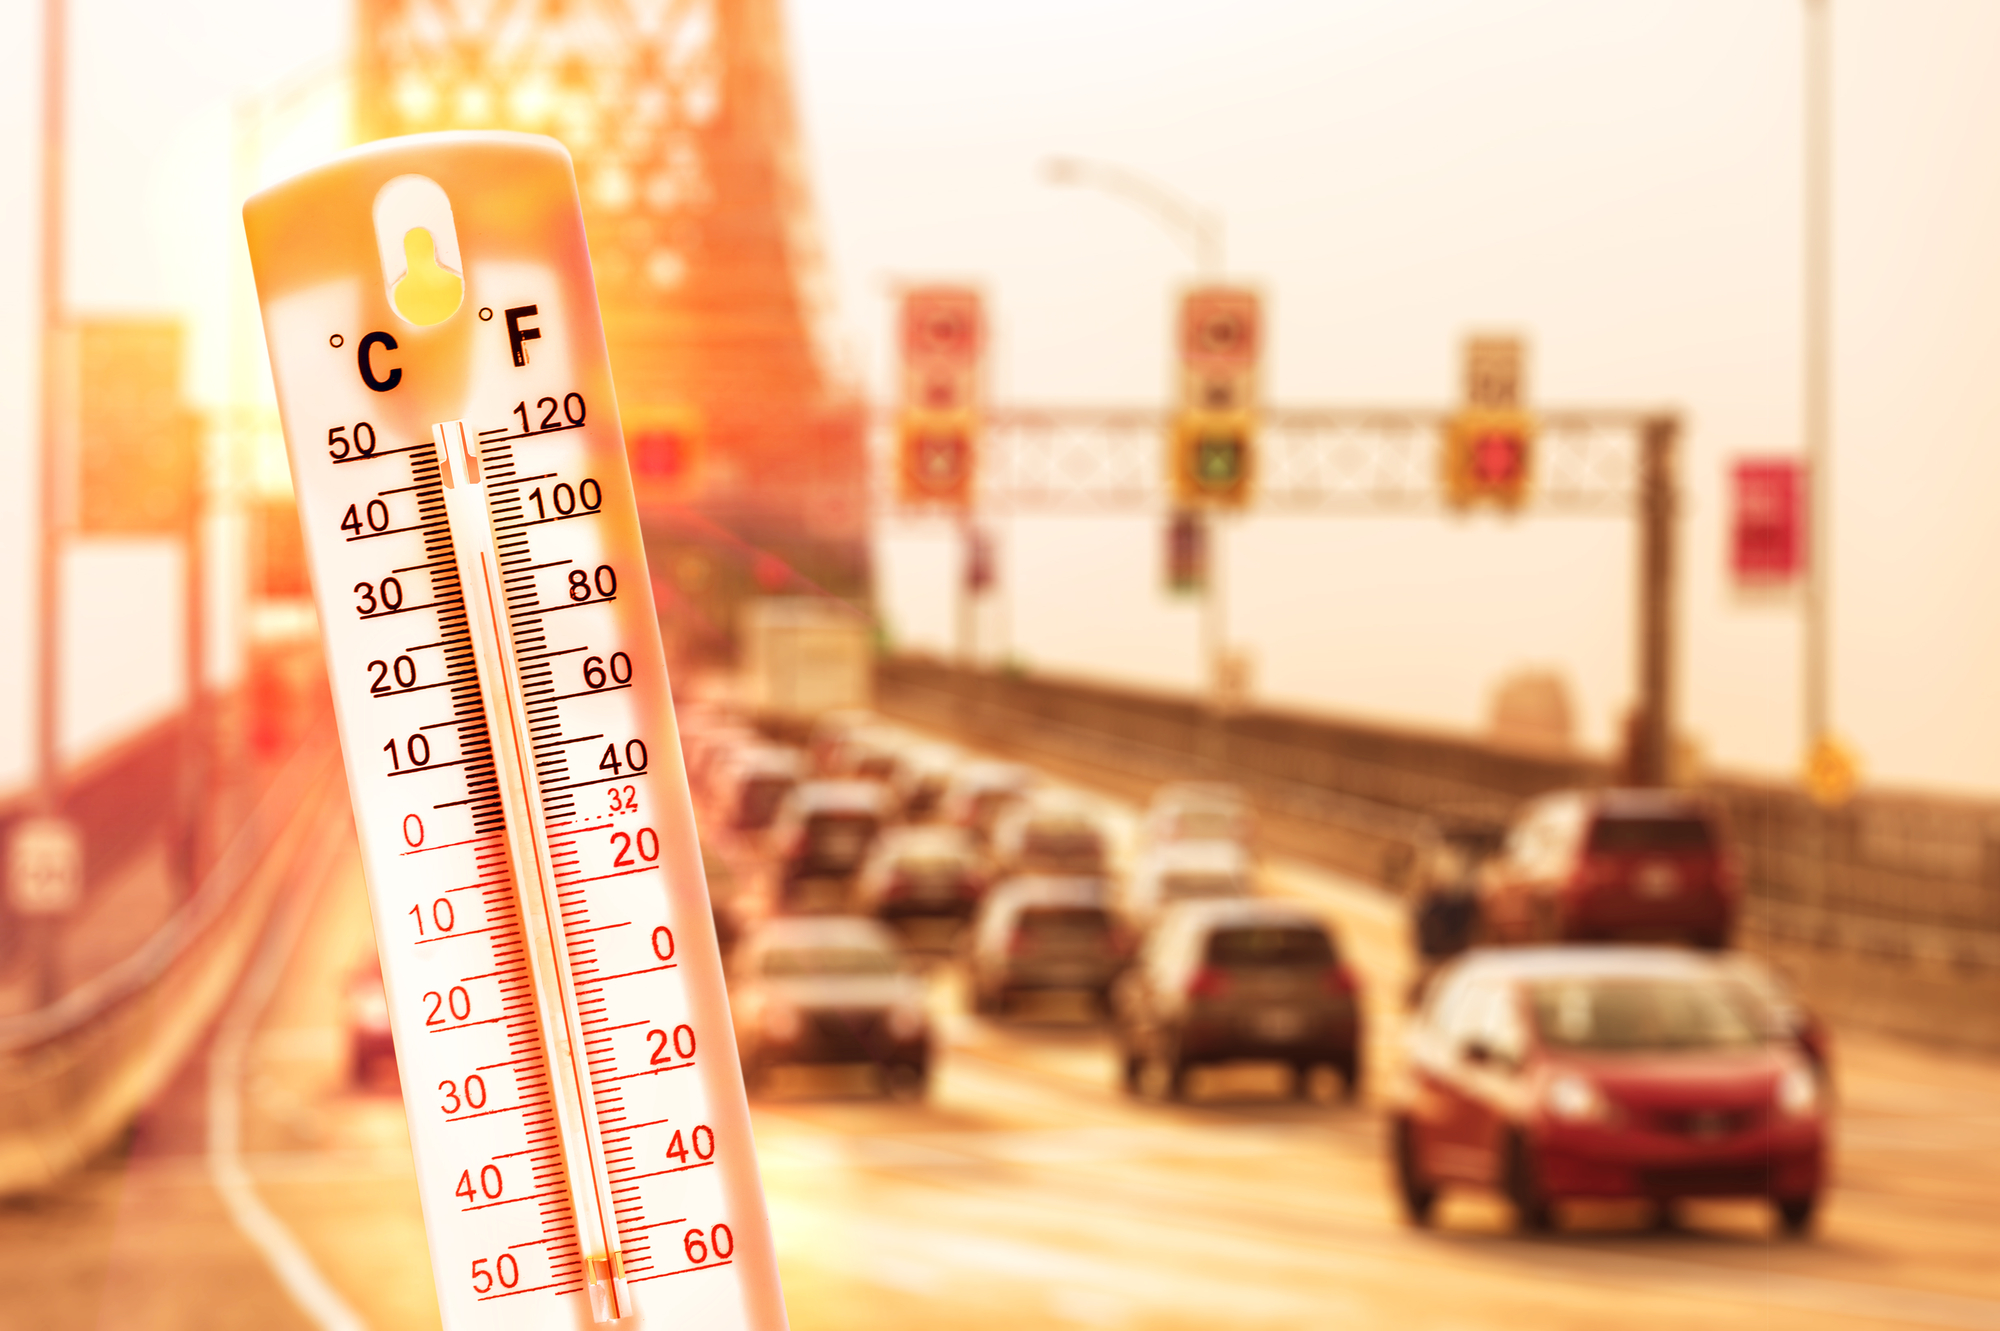 Thermometer shows high temp with traffic in the background